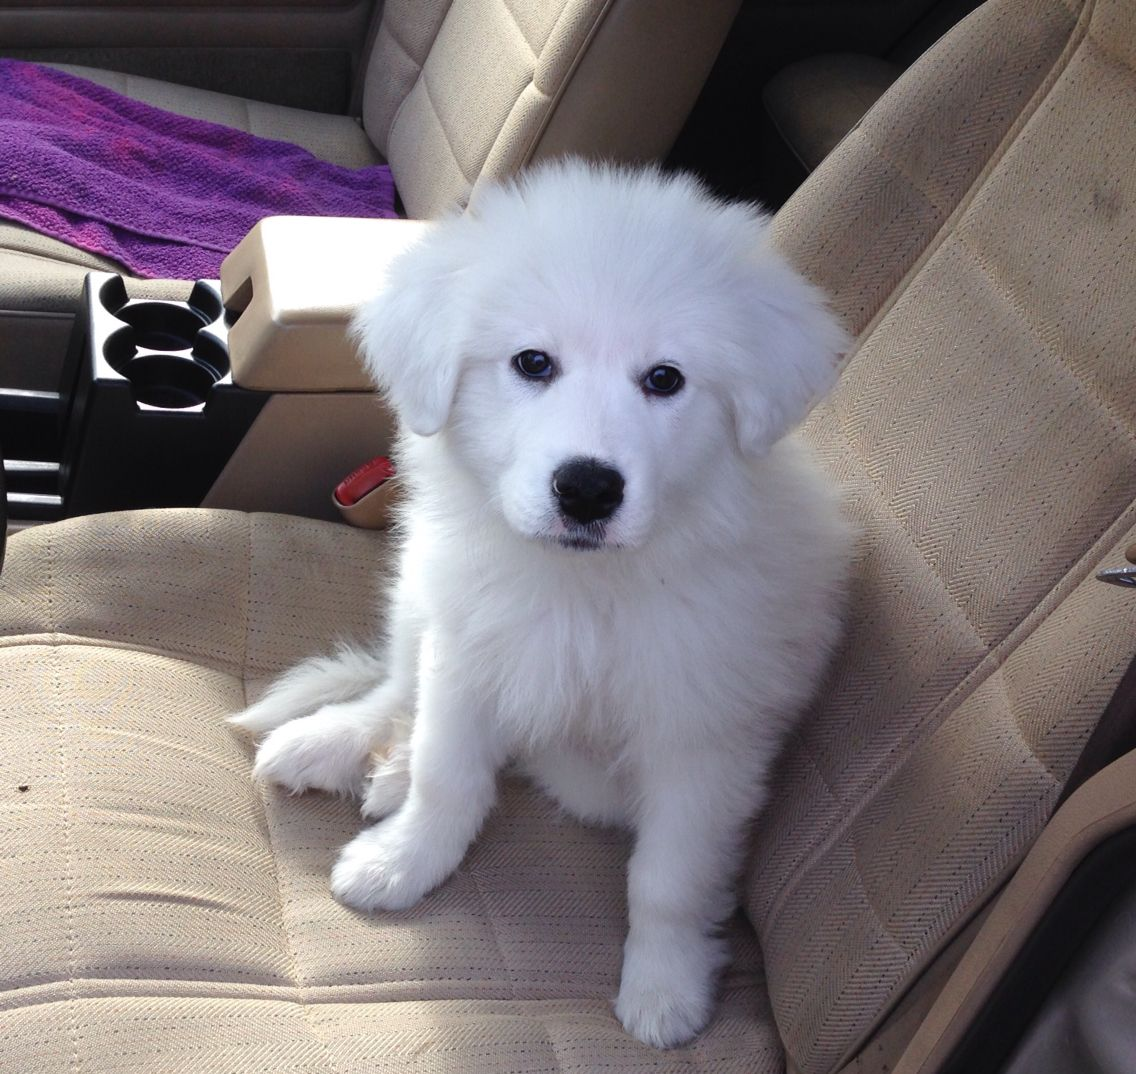 My Great Pyrenees Puppy Echo 10 Weeks Old Great Pyrenees